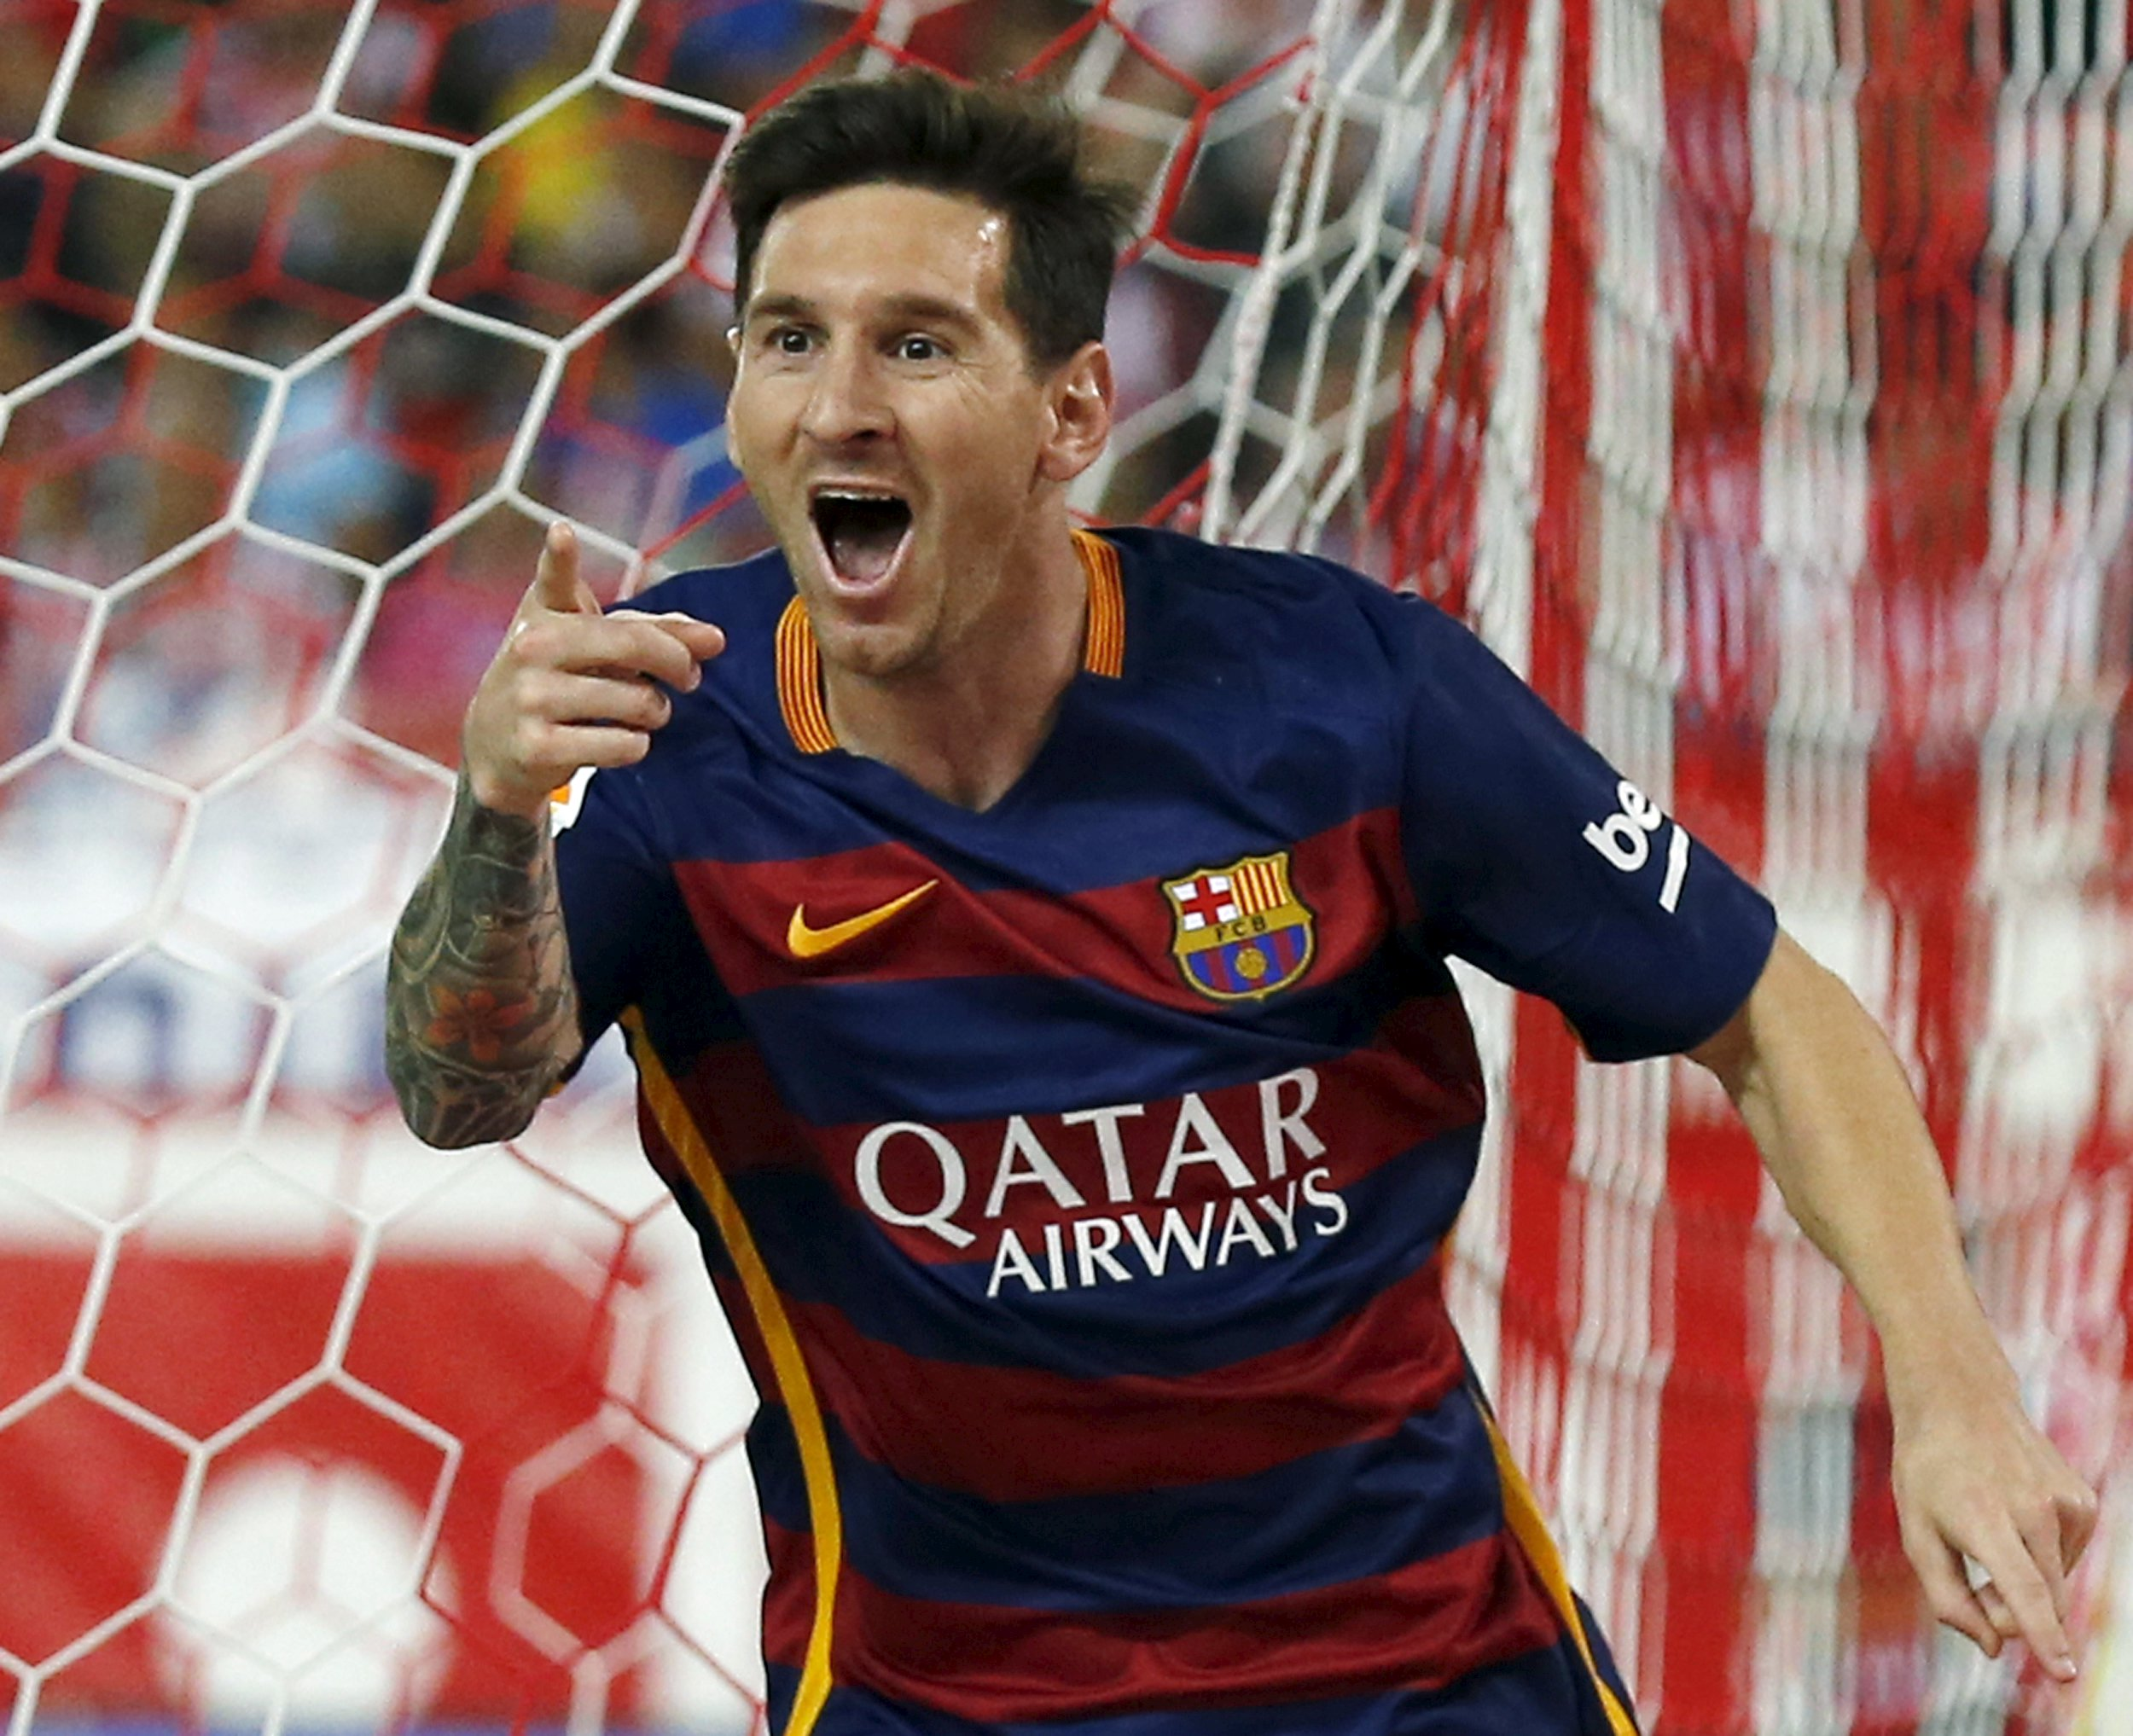 Barcelona's Lionel Messi celebrates after scoring a goal against Atletico Madrid's during their Spanish first division soccer match at Vicente Calderon stadium in Madrid, September 12, 2015. REUTERS/Javier Barbancho